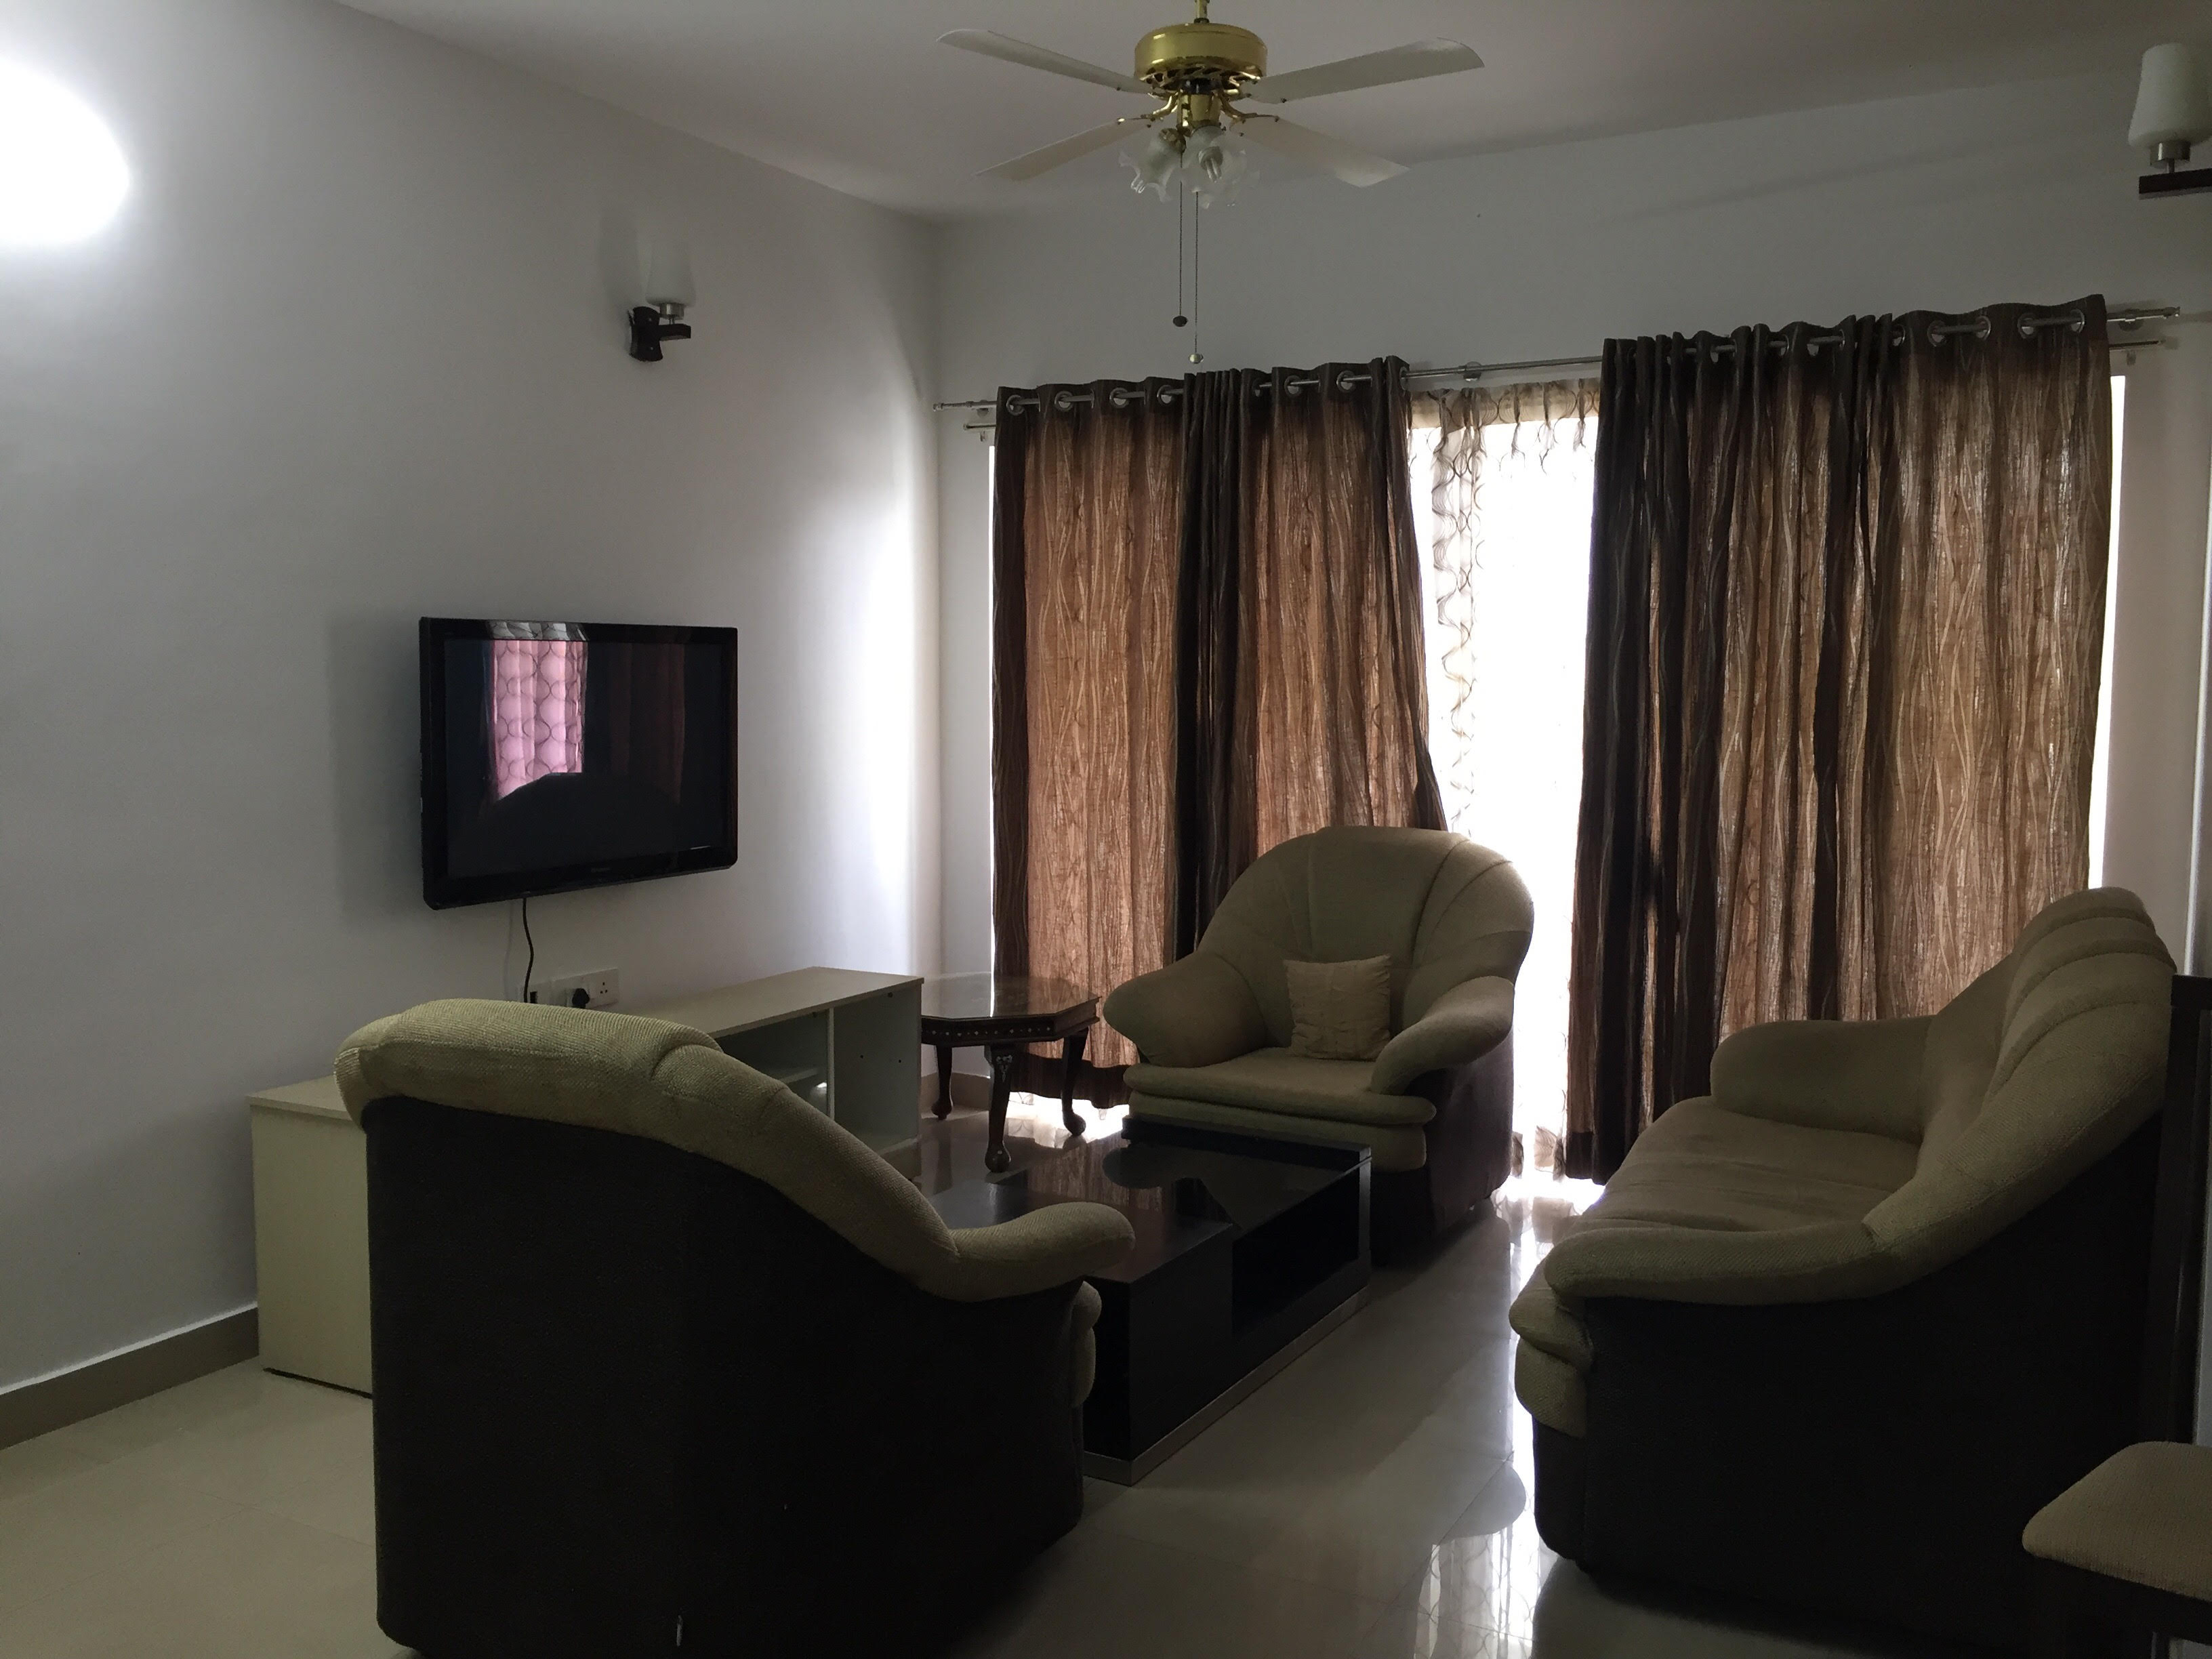 2BHK-966sqft-flat-for-rent-in-yadavagiri-Mysore-TP12596396